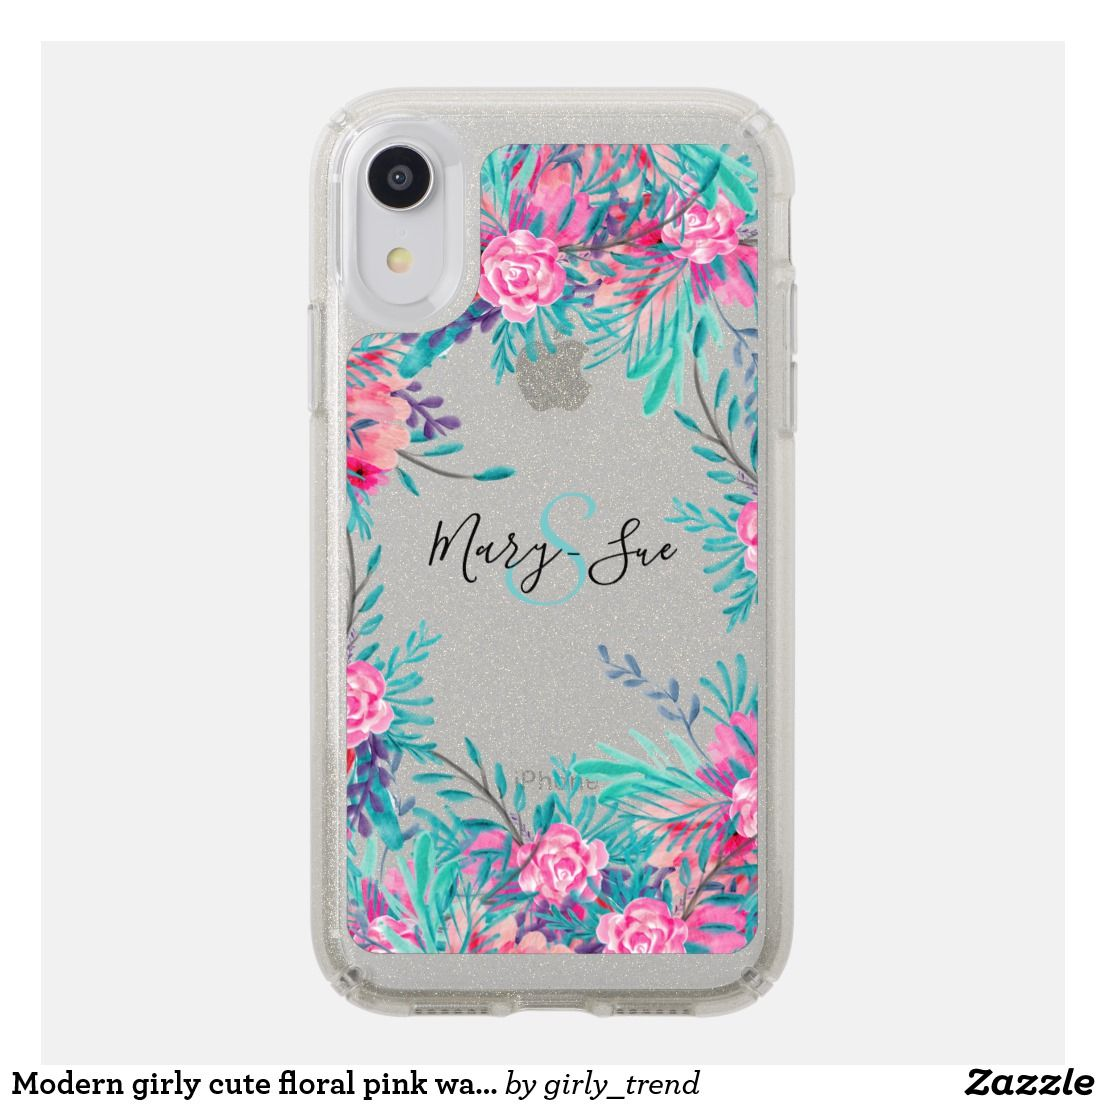 Modern girly cute floral pink watercolor monogram speck